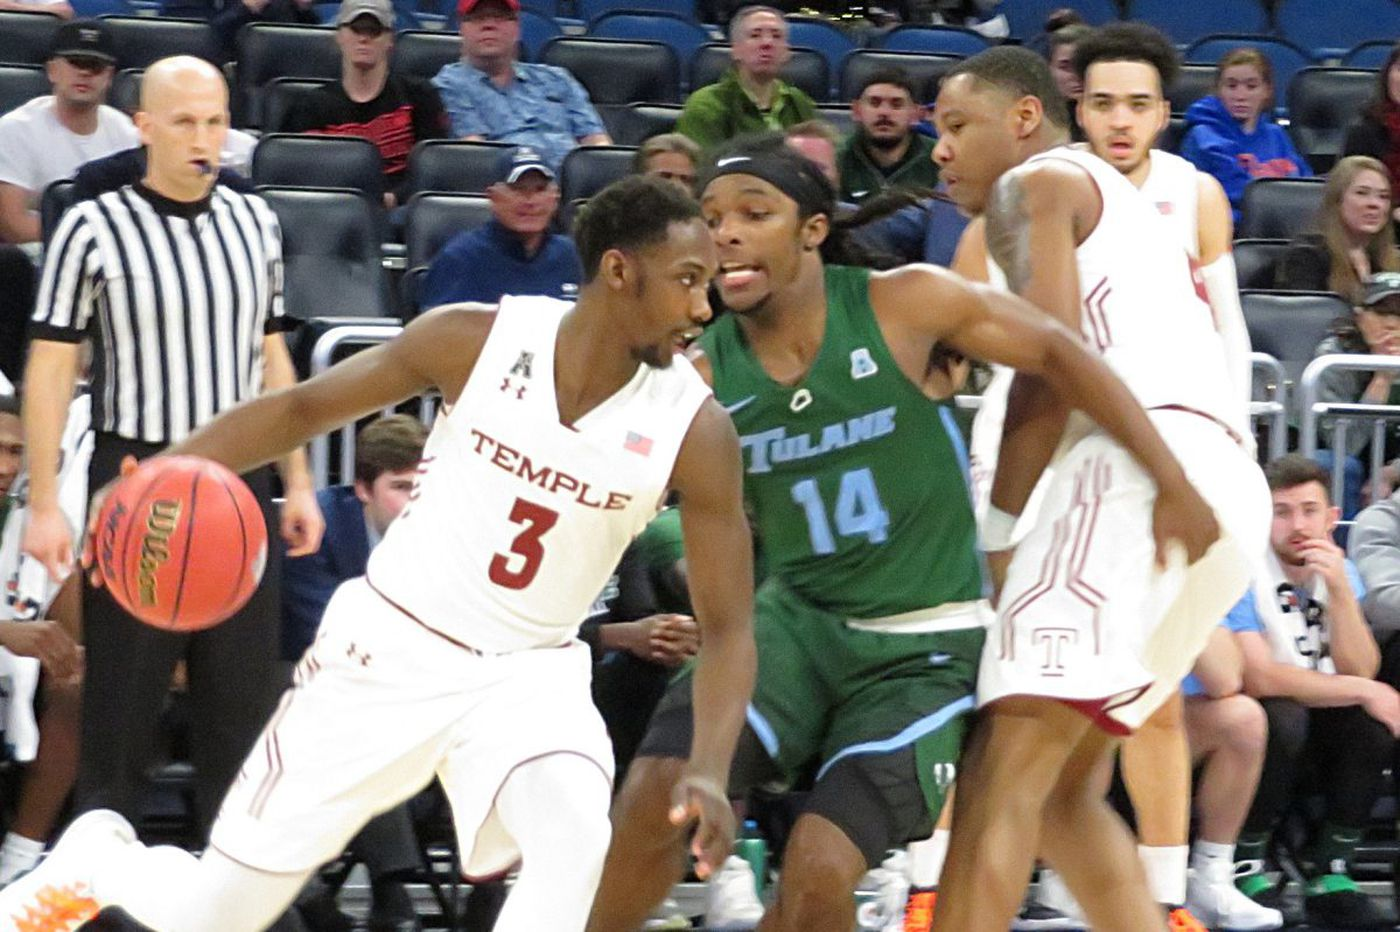 Temple survives late scare to beat Tulane in American Athletic Conference tournament